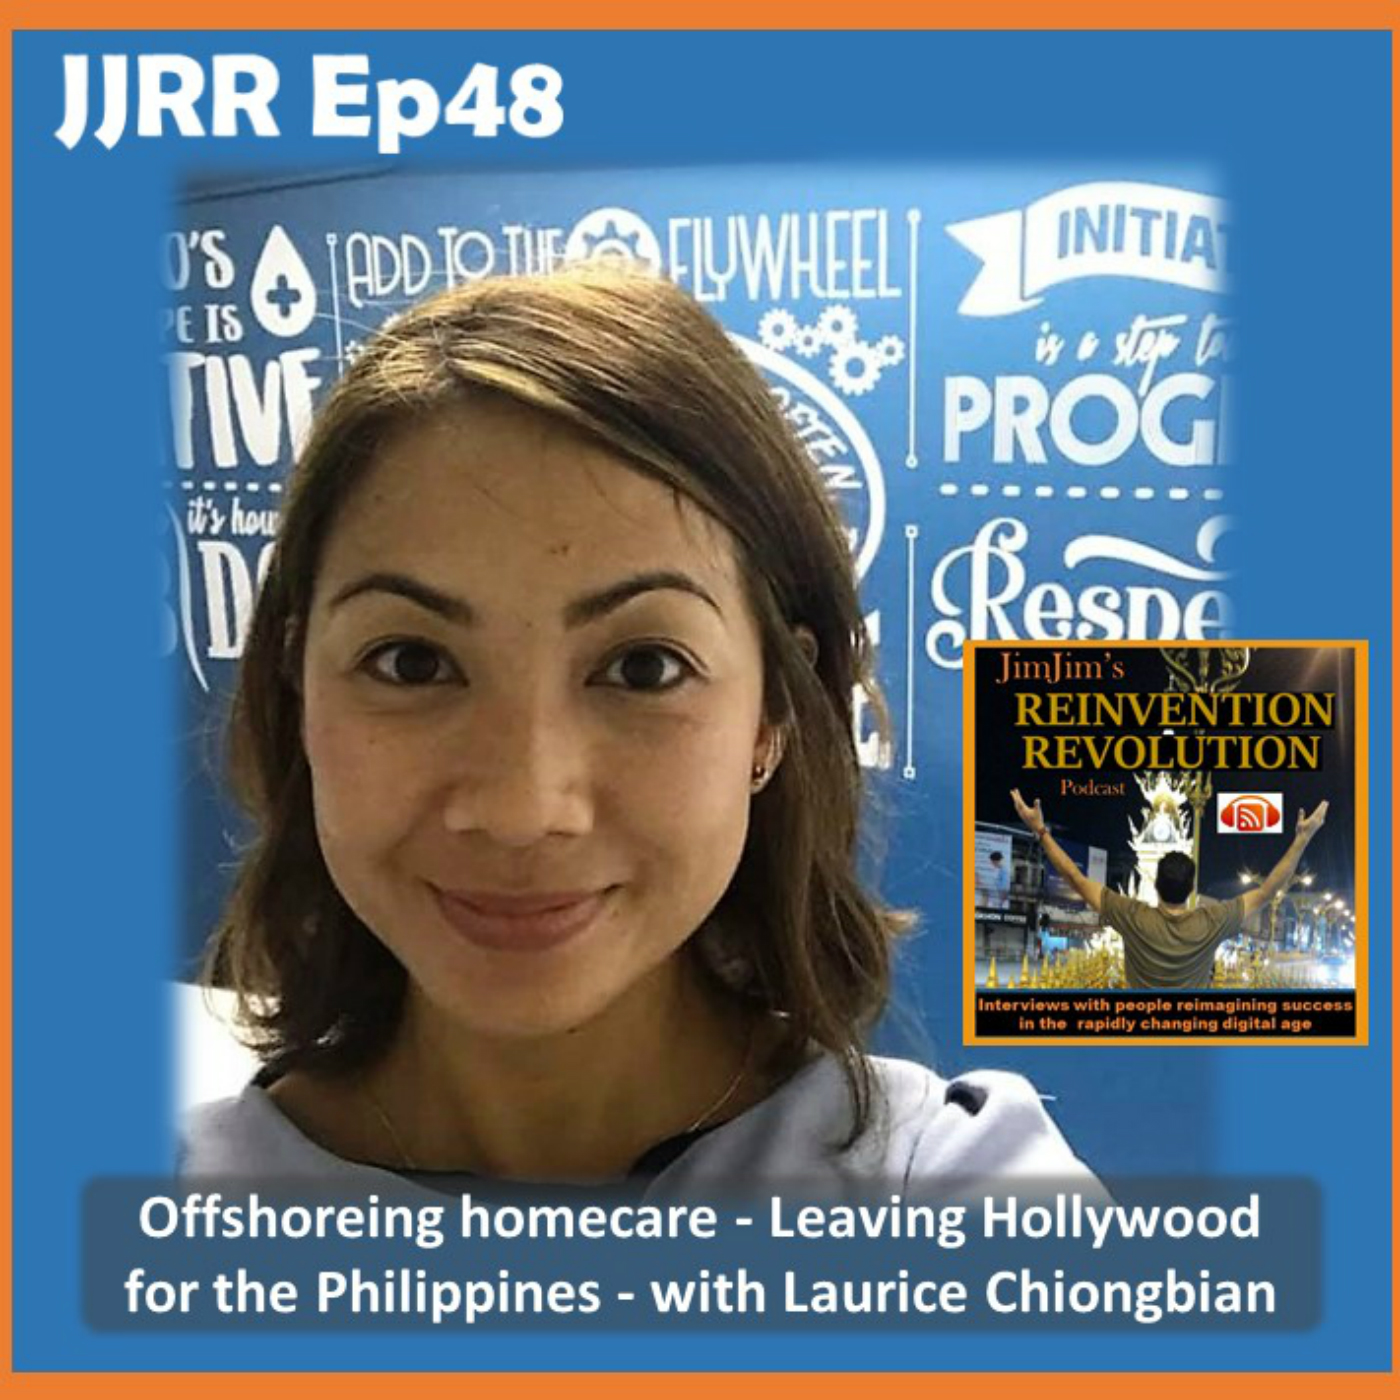 JJRR Ep48 Offshoreing homecare – Leaving Hollywood for the Philippines – with Laurice Chiongbian